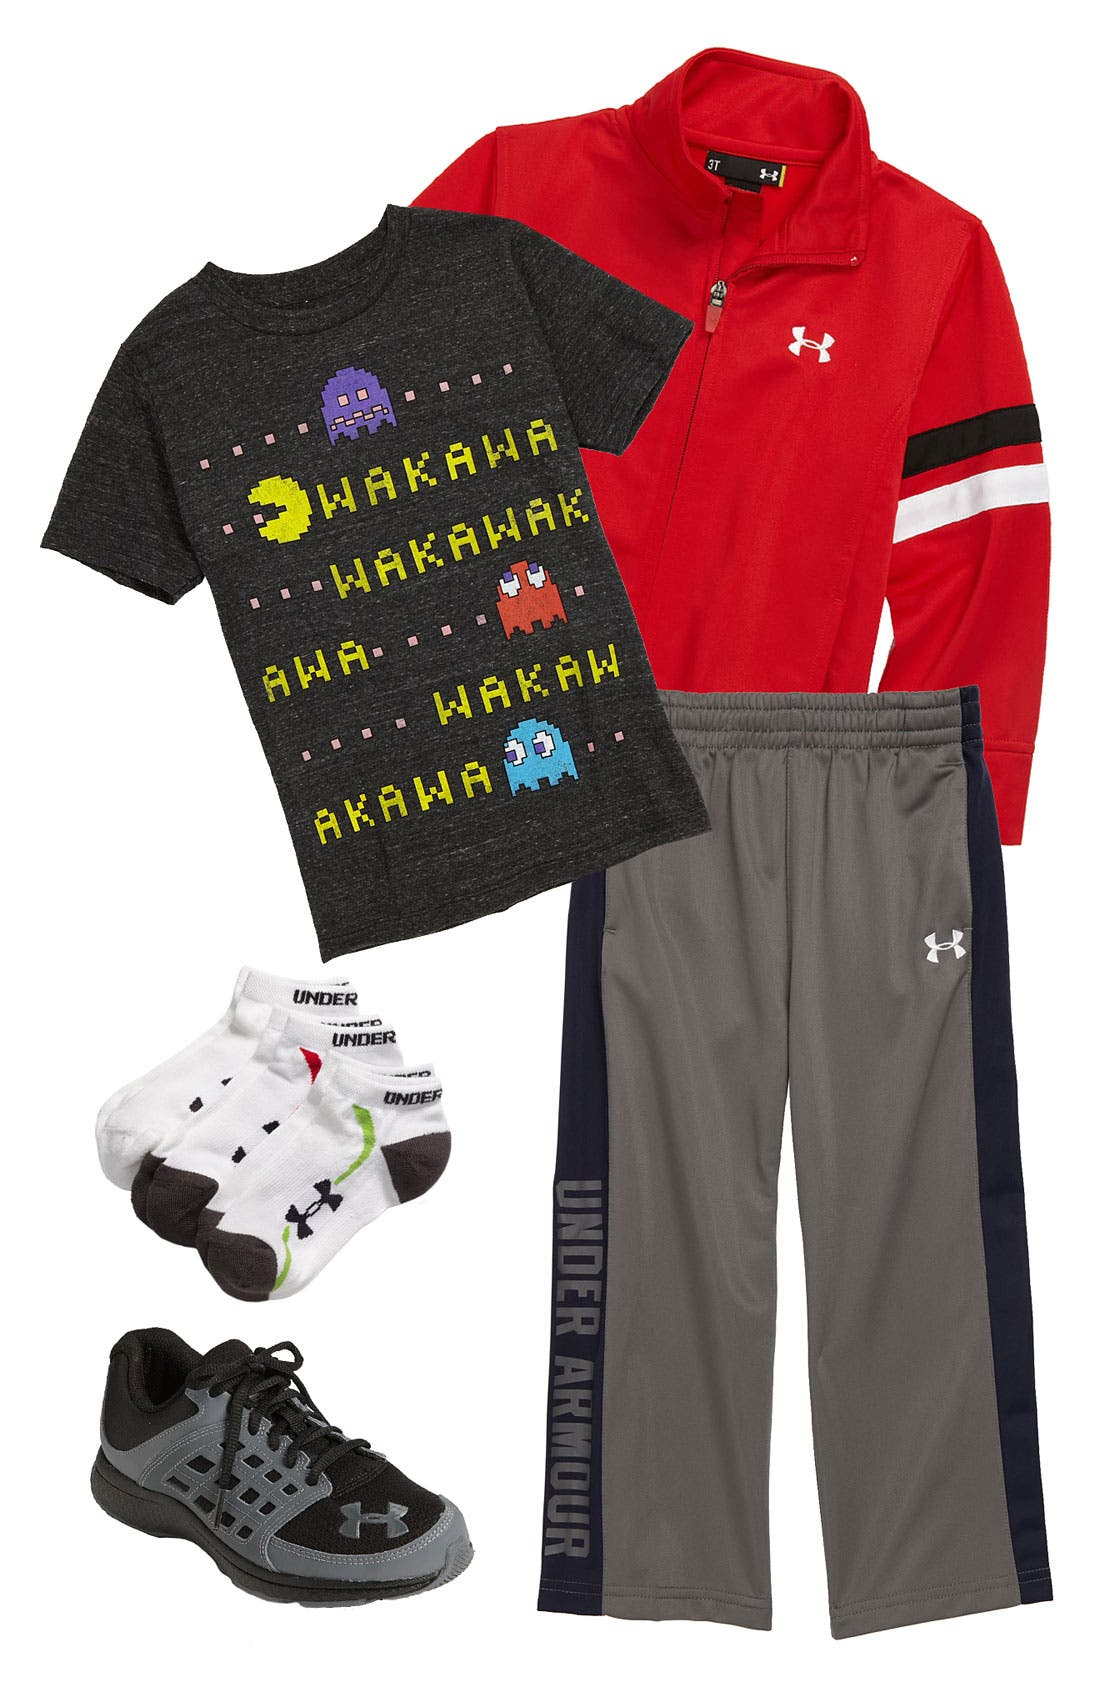 Alternate Image 1 Selected - Made Engine T-Shirt & Under Armour Jacket & Pants (Little Boys)